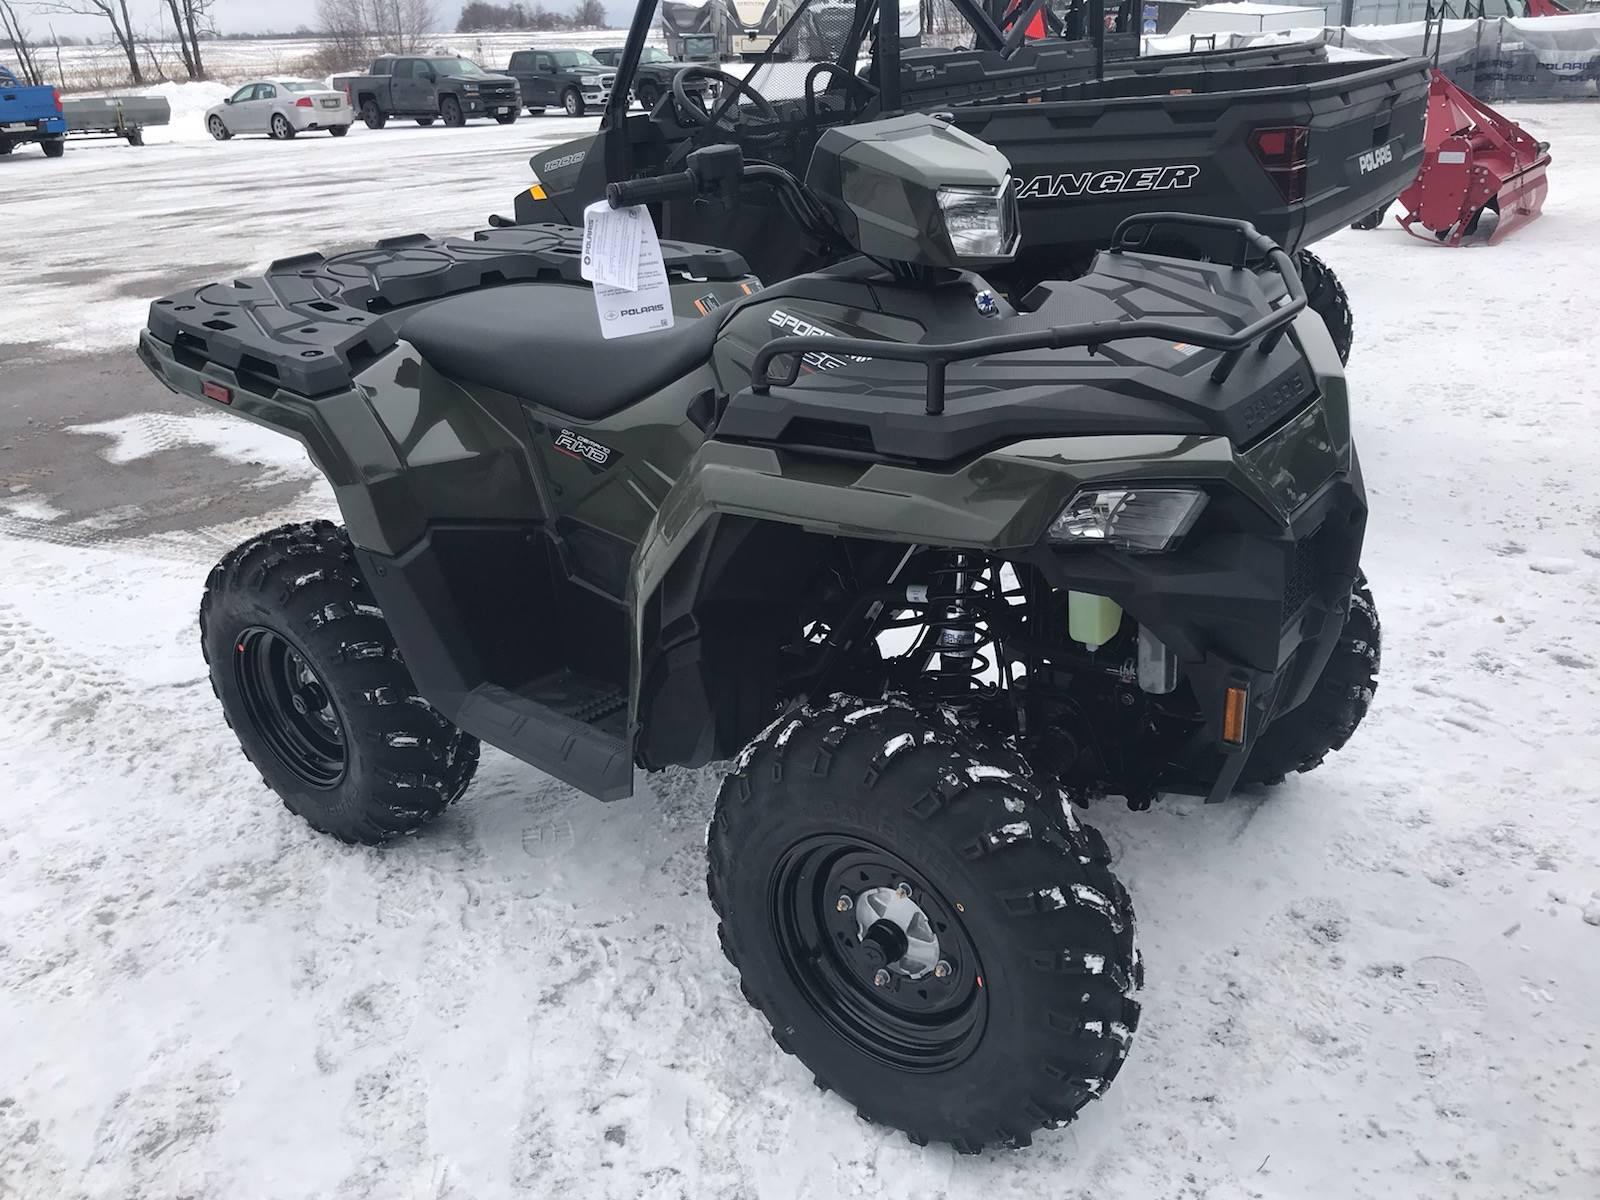 2021 Polaris Sportsman 450 H.O. in Malone, New York - Photo 1